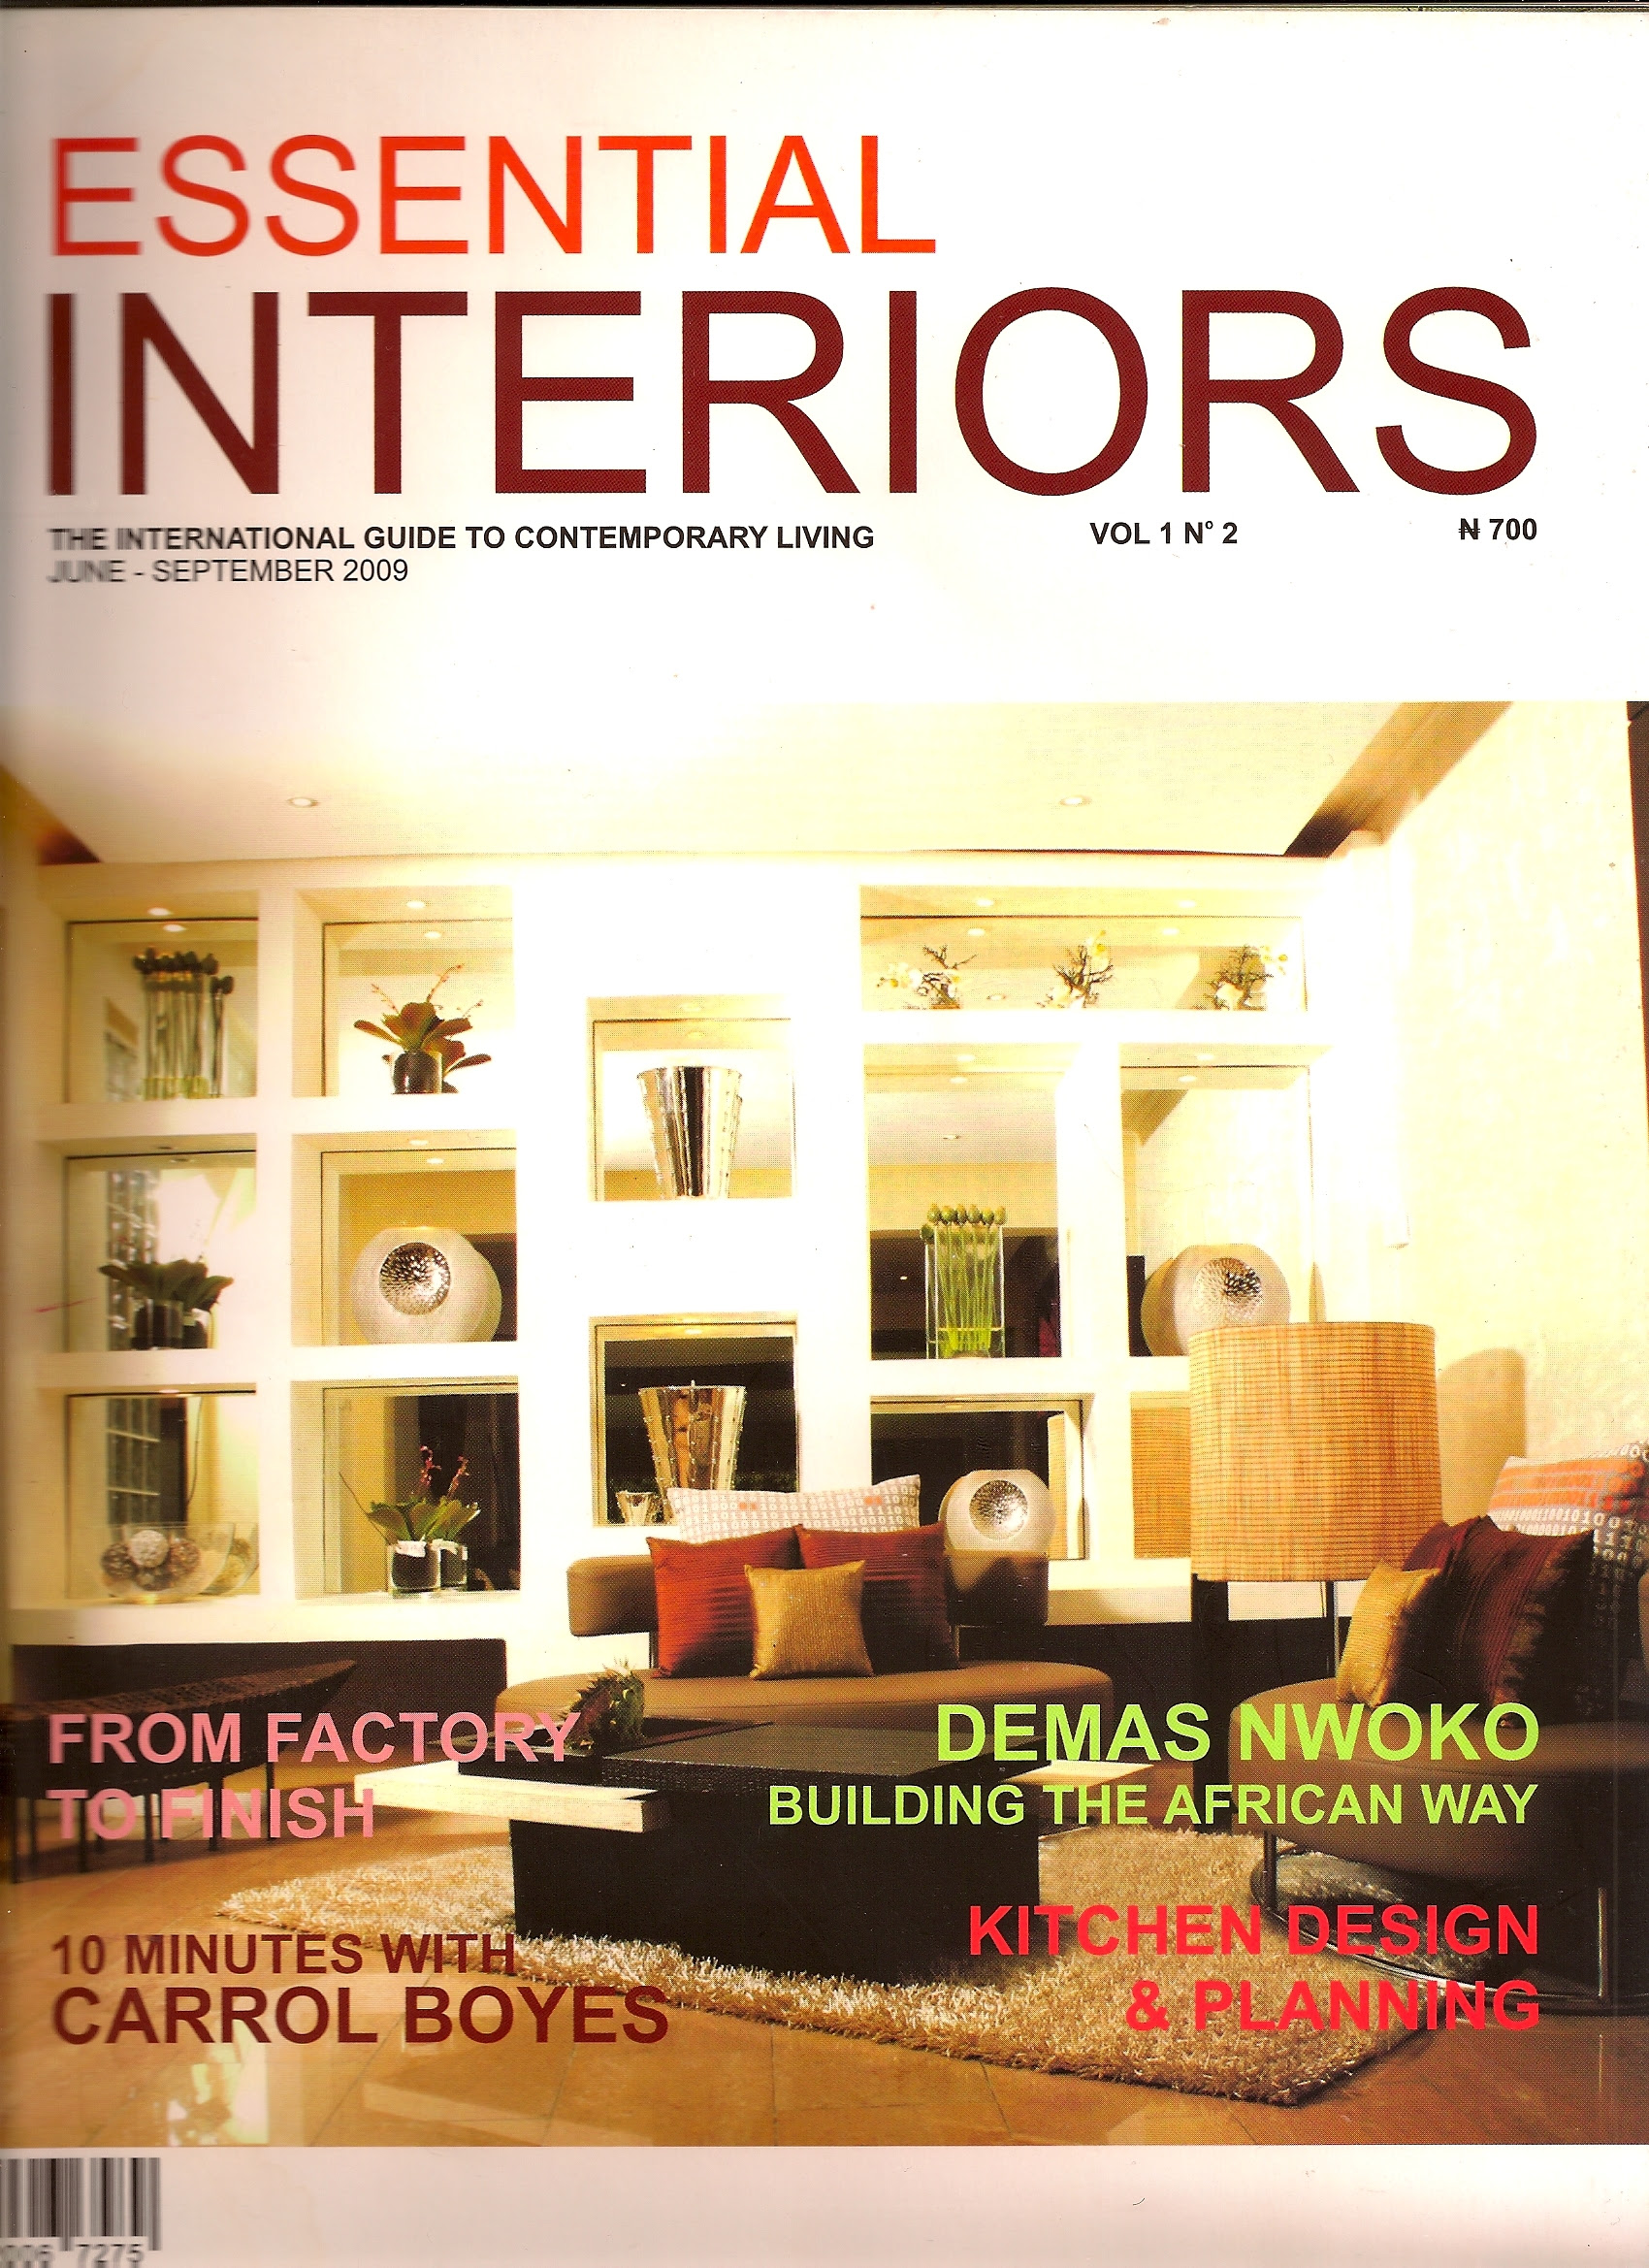 International Interior Design Magazines - minimalist home design